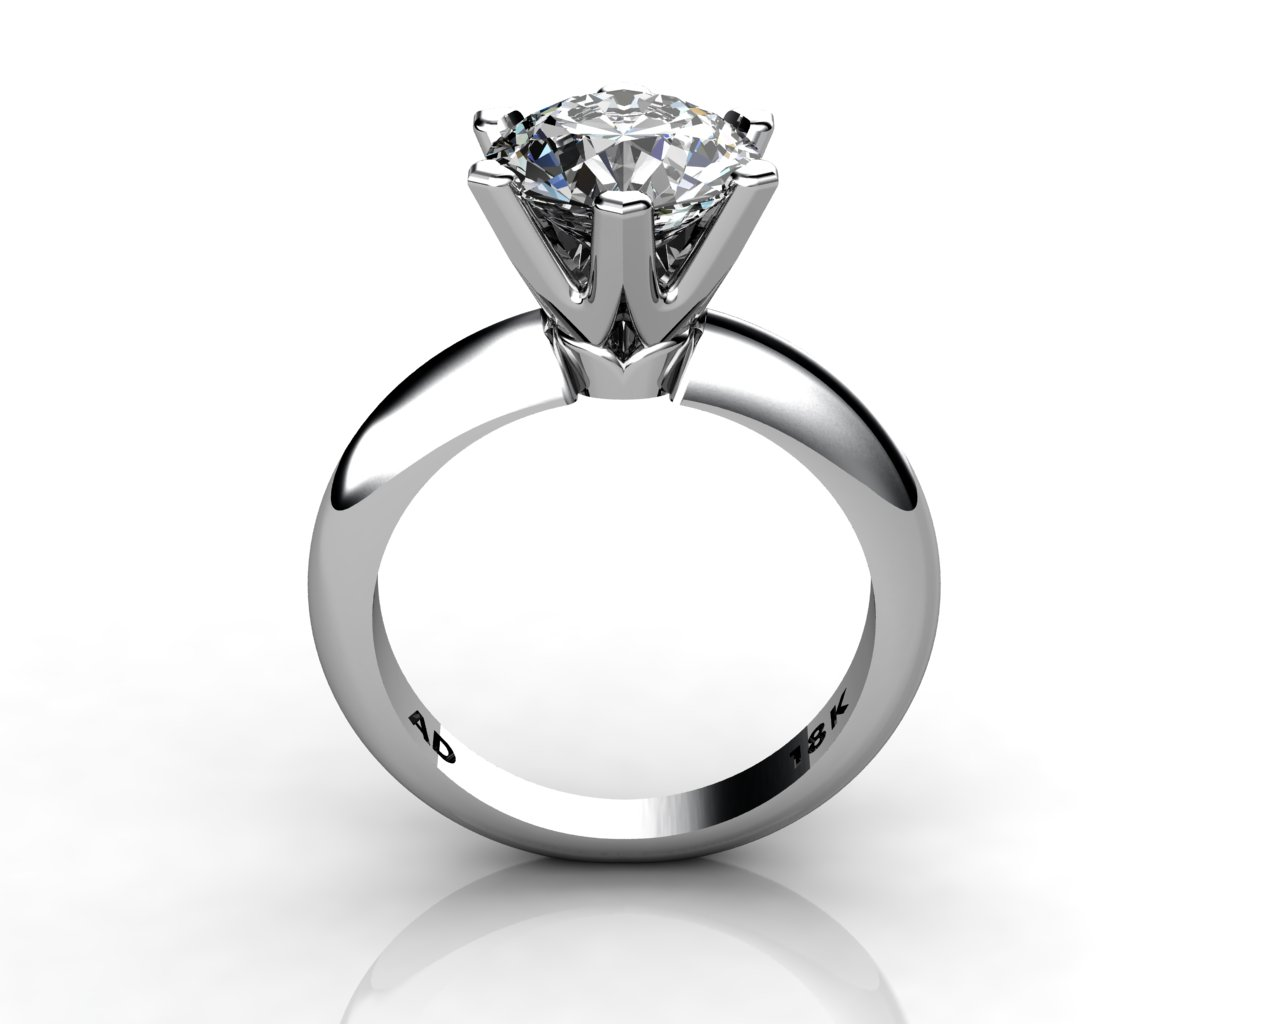 Diamond Solitaire Engagement Ring Round Cut 2.50ct Diamond 6 PRONGS 6gr 18kt White Gold - South Bay Gold Torrance